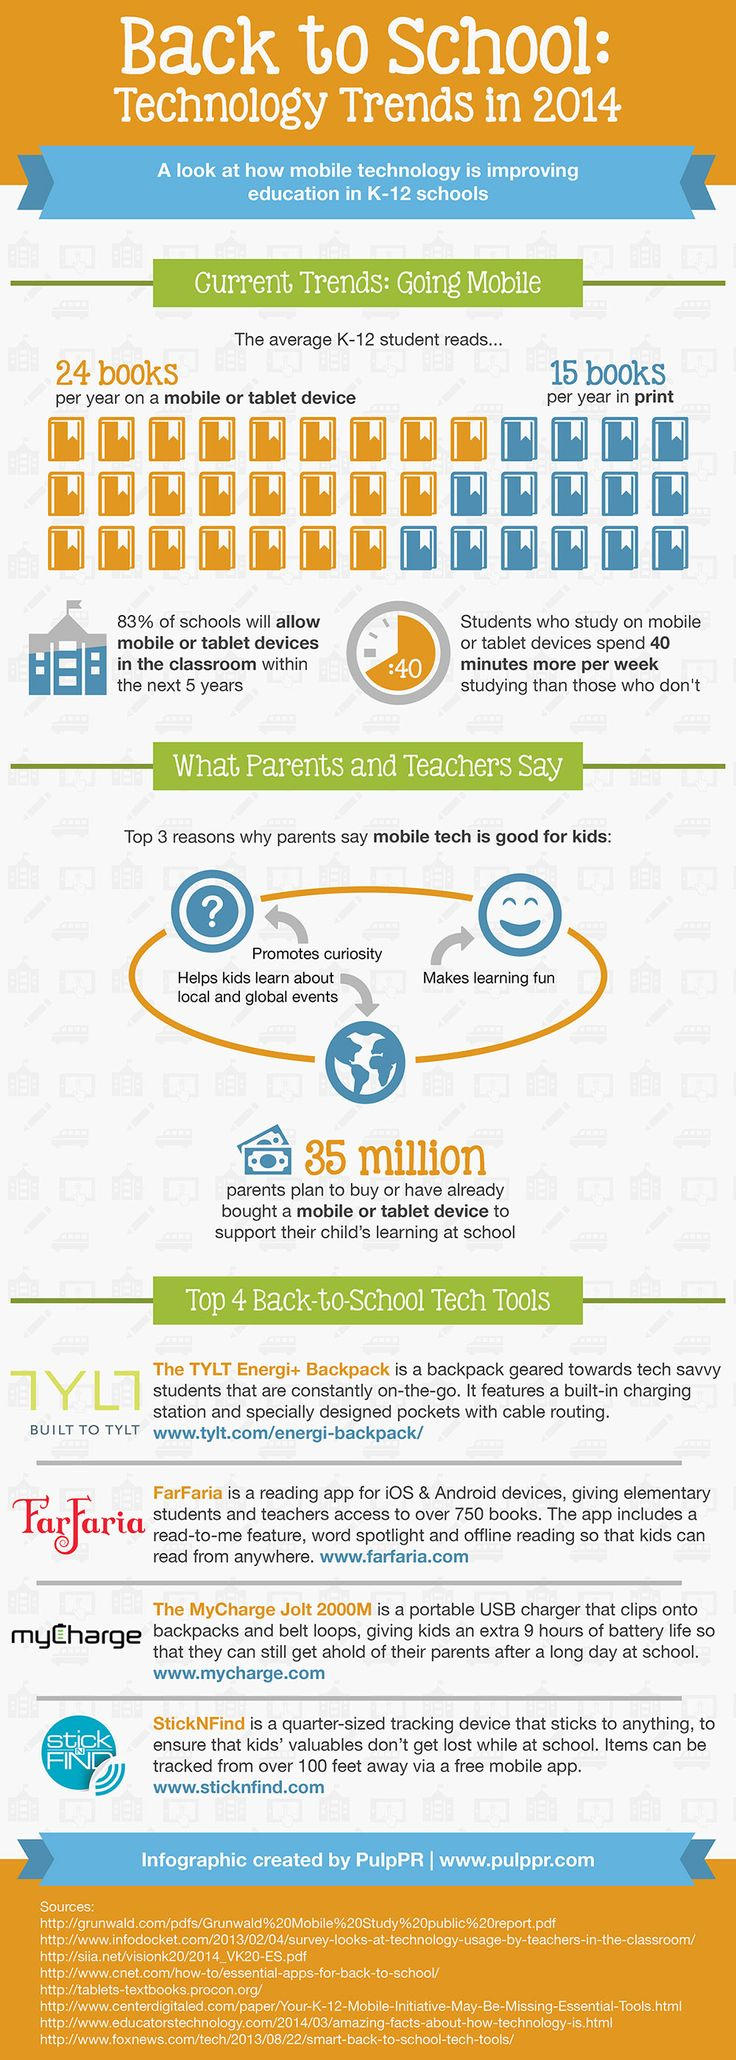 Back to School Infographic: Mobile Technology Trends in 2014 - http://elearninginfographics.com/back-to-school-infographic-mobile-technology-trends-2014/